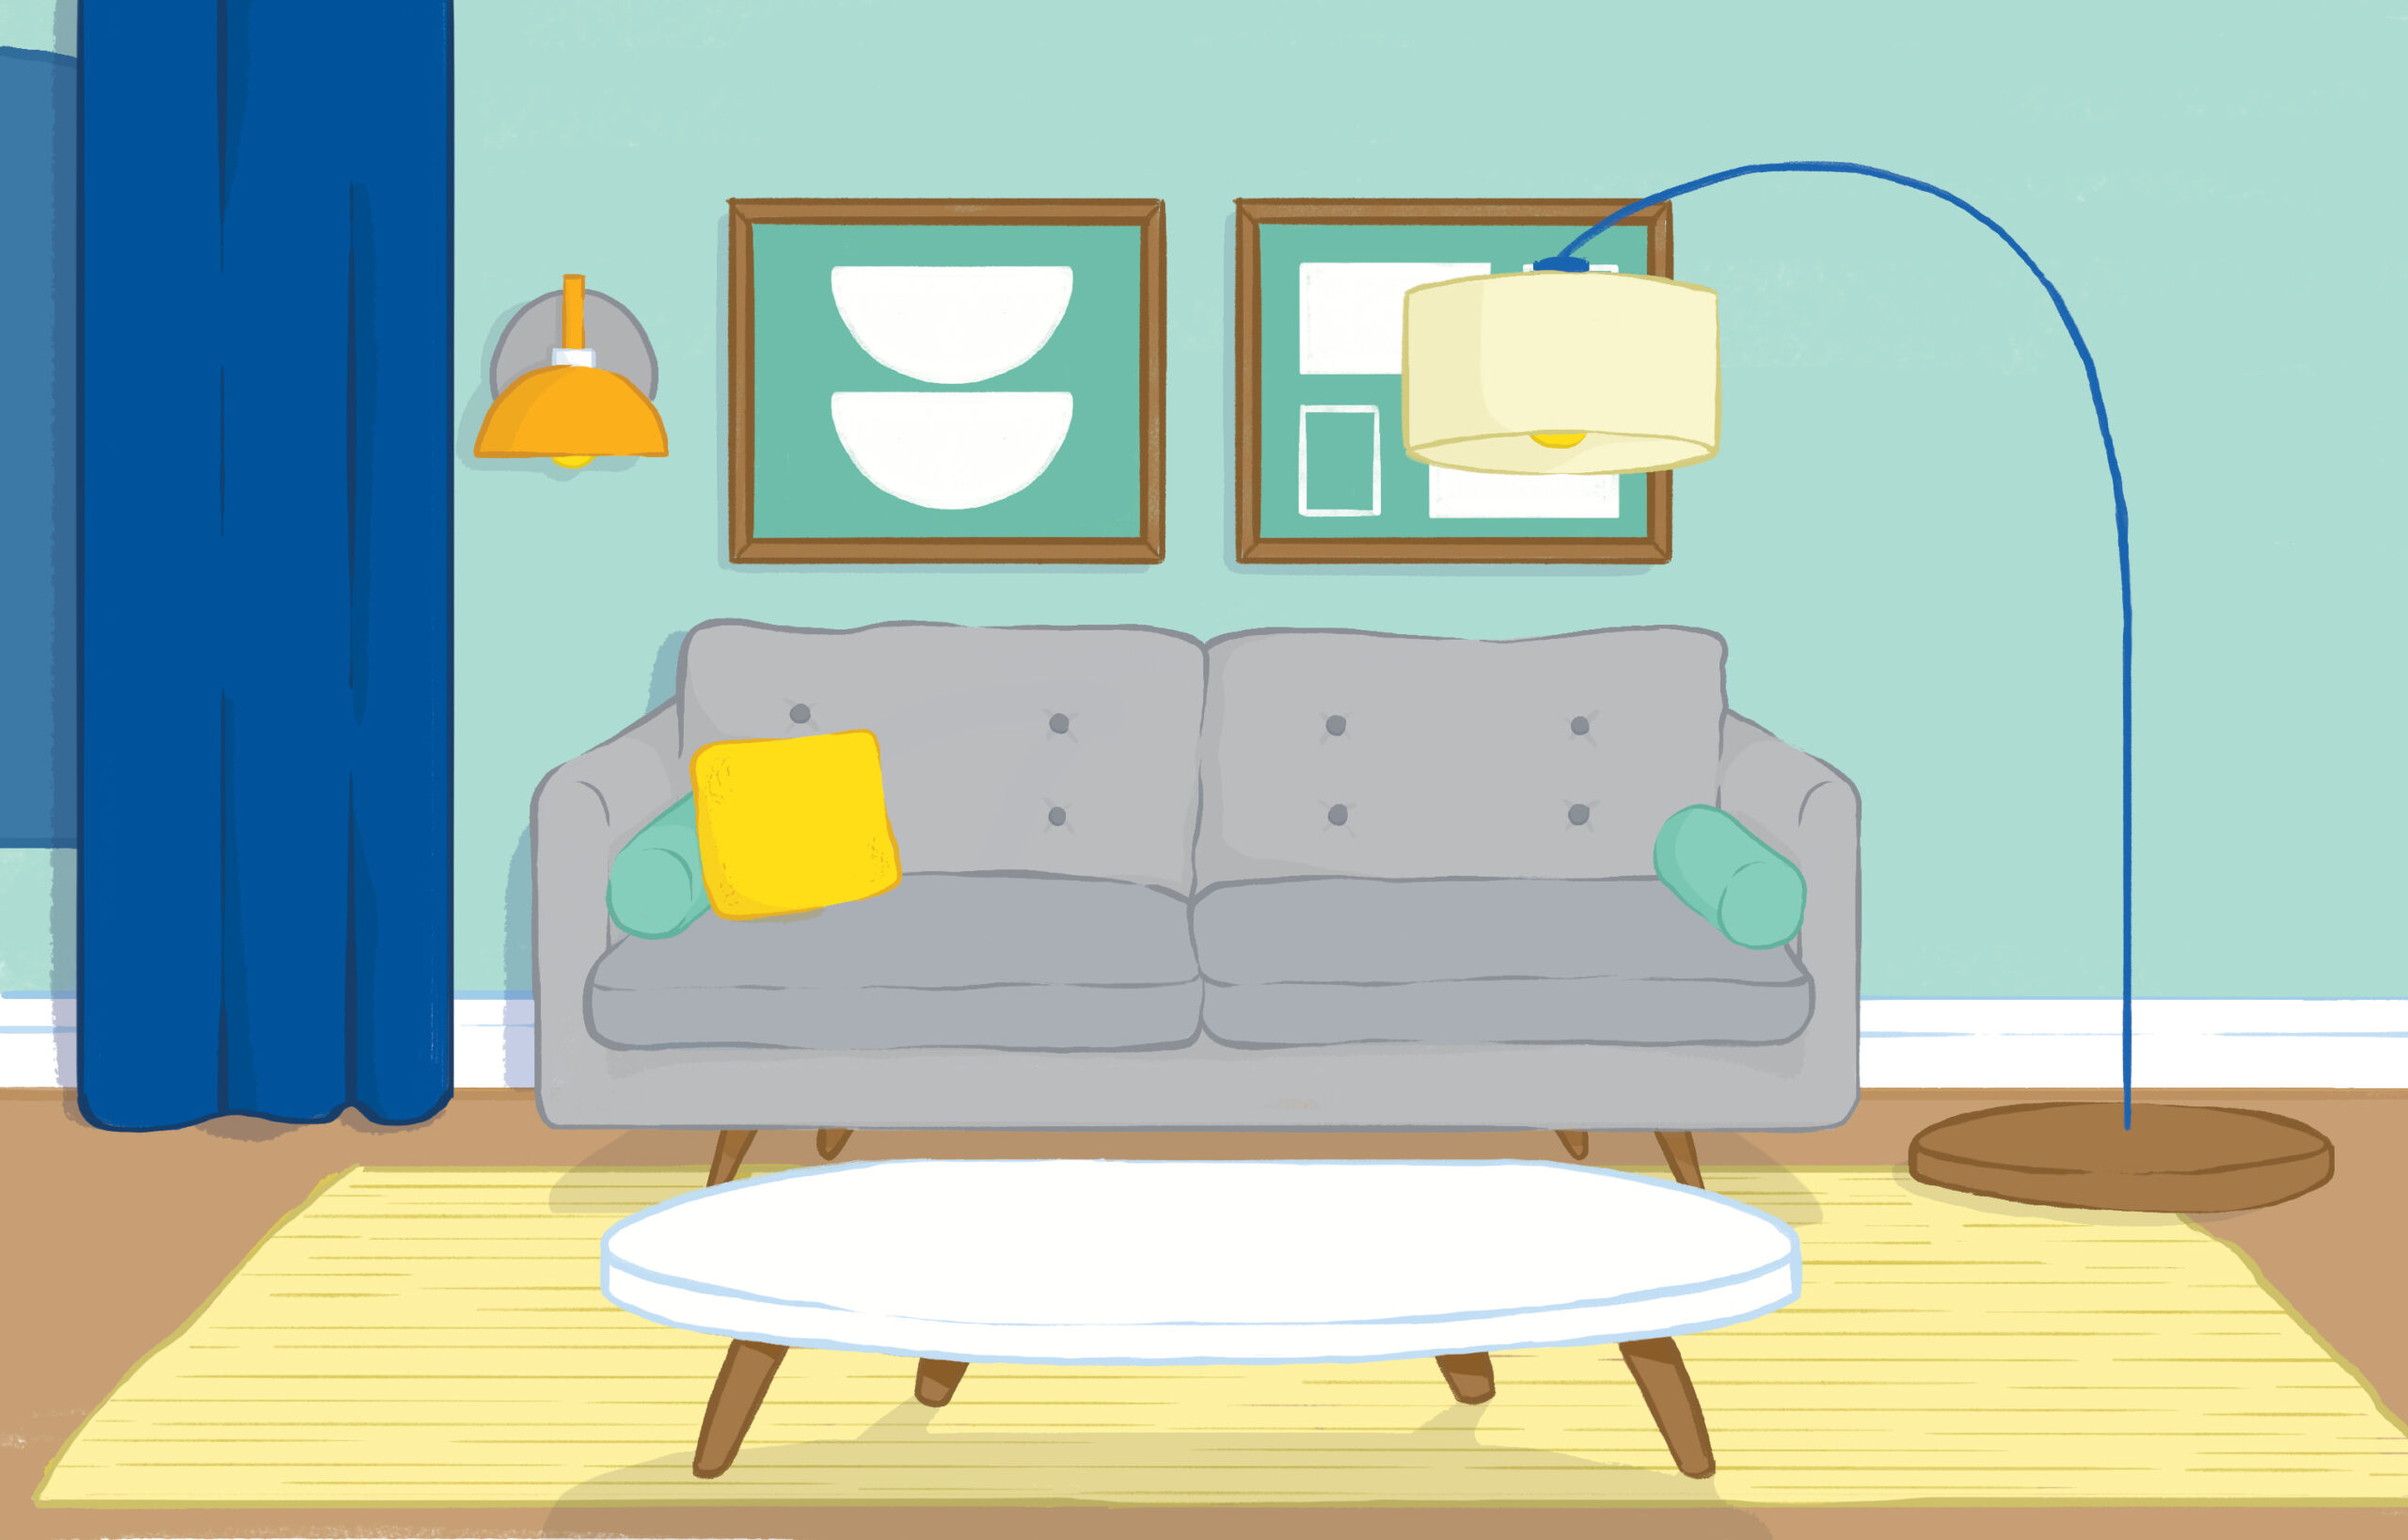 Illustration of home interior with this season's decor trends